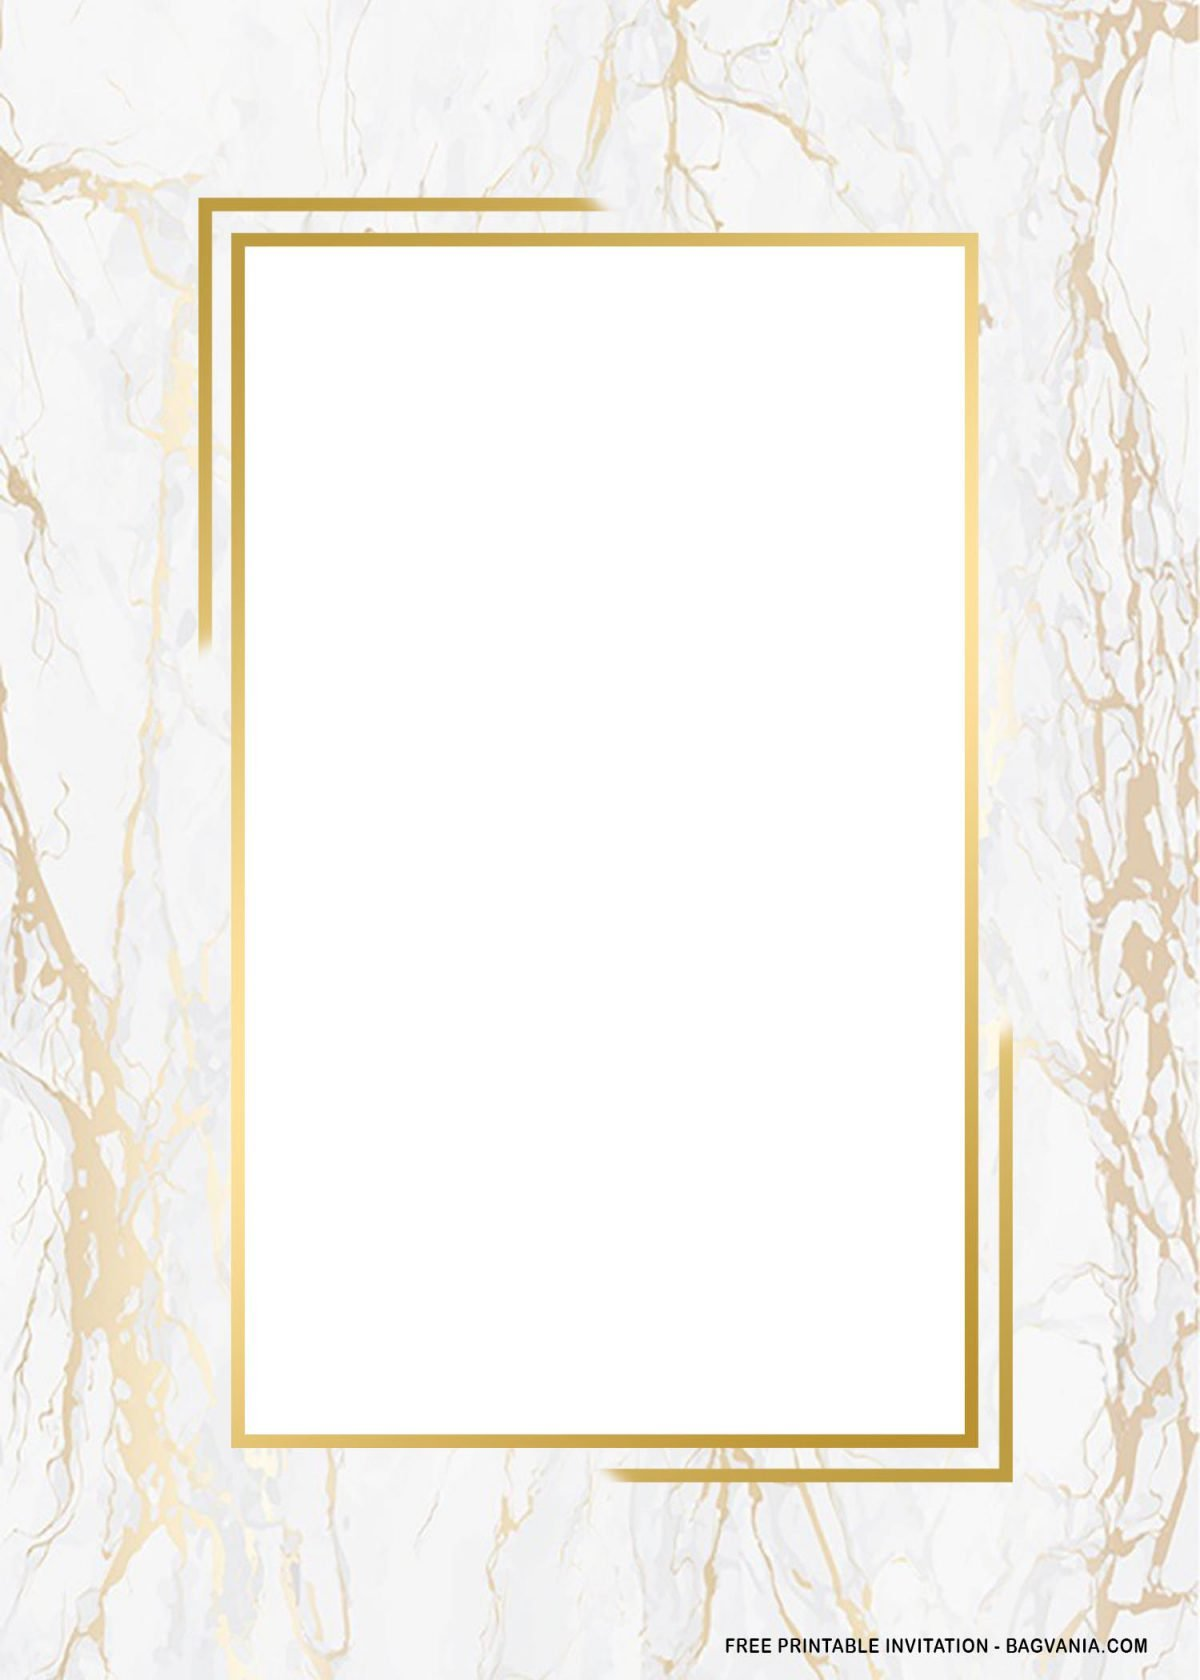 Free Printable Rectangle Gold Marble Baby Shower Invitation Templates With Gold Rectangle Frame